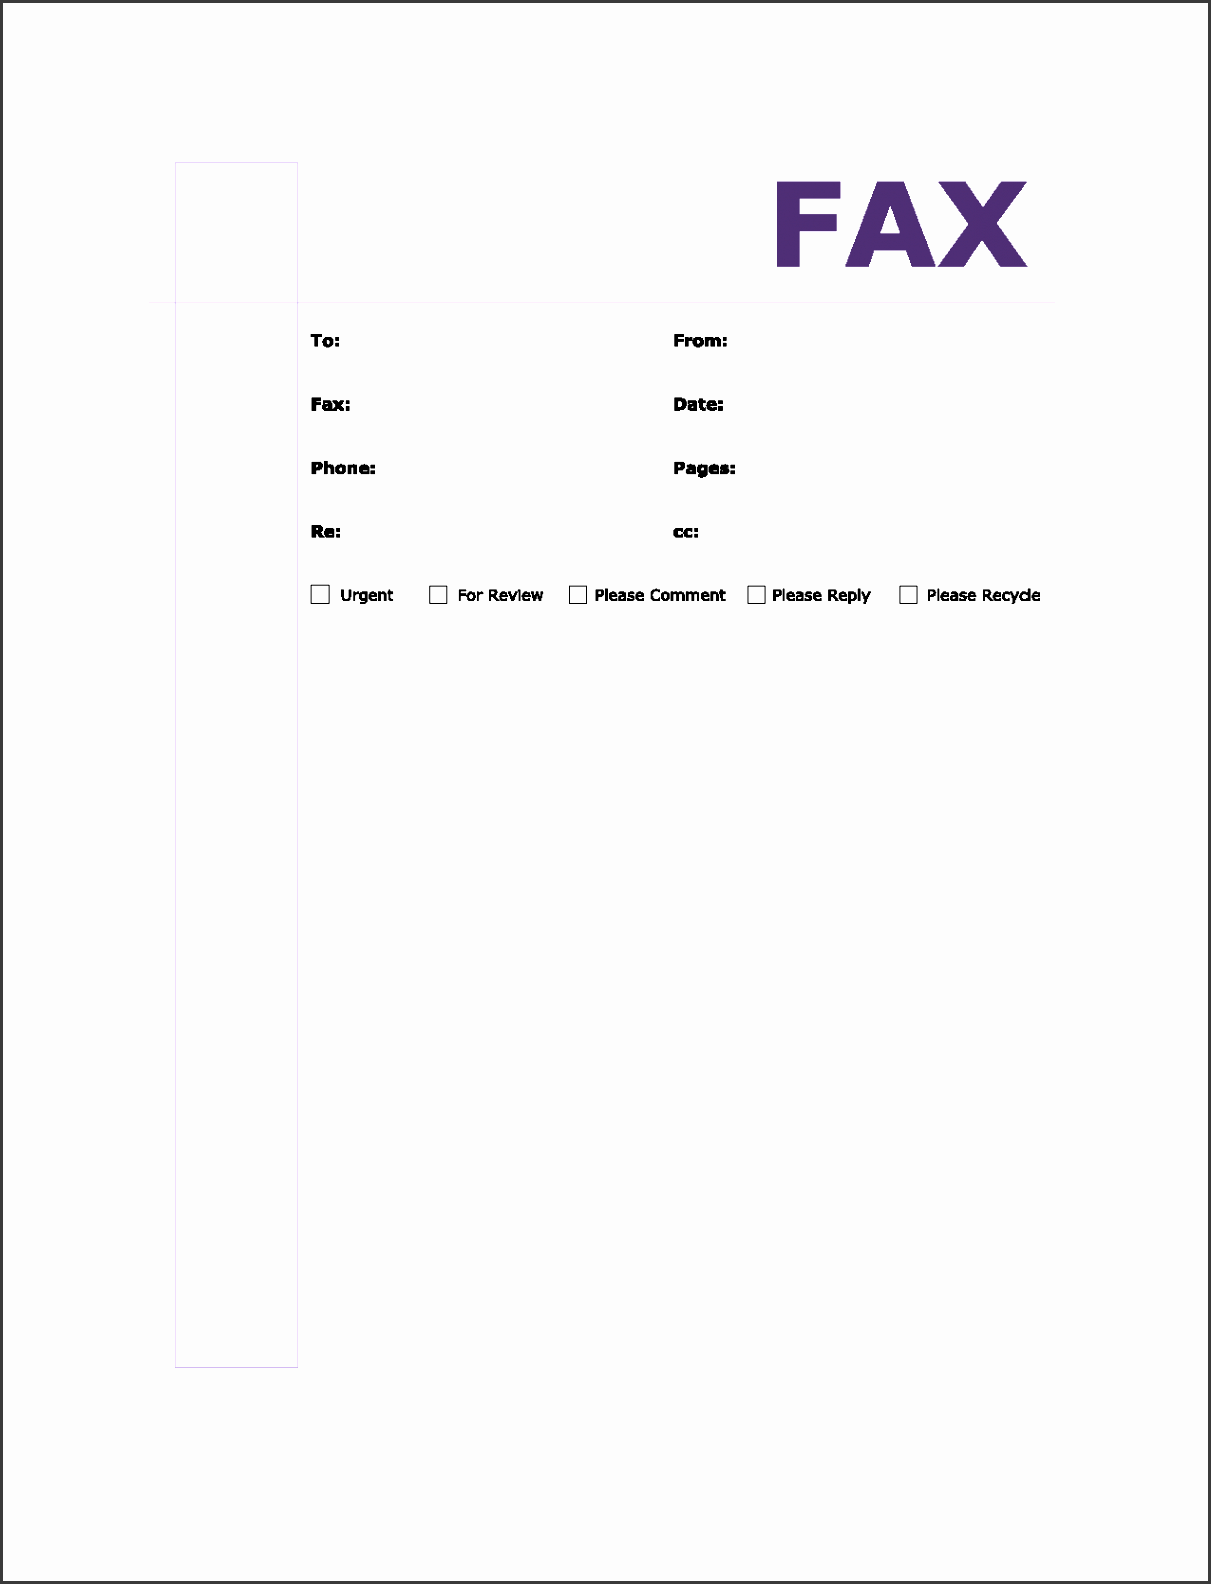 fax resume cover letter template basic fax cover sheet printable